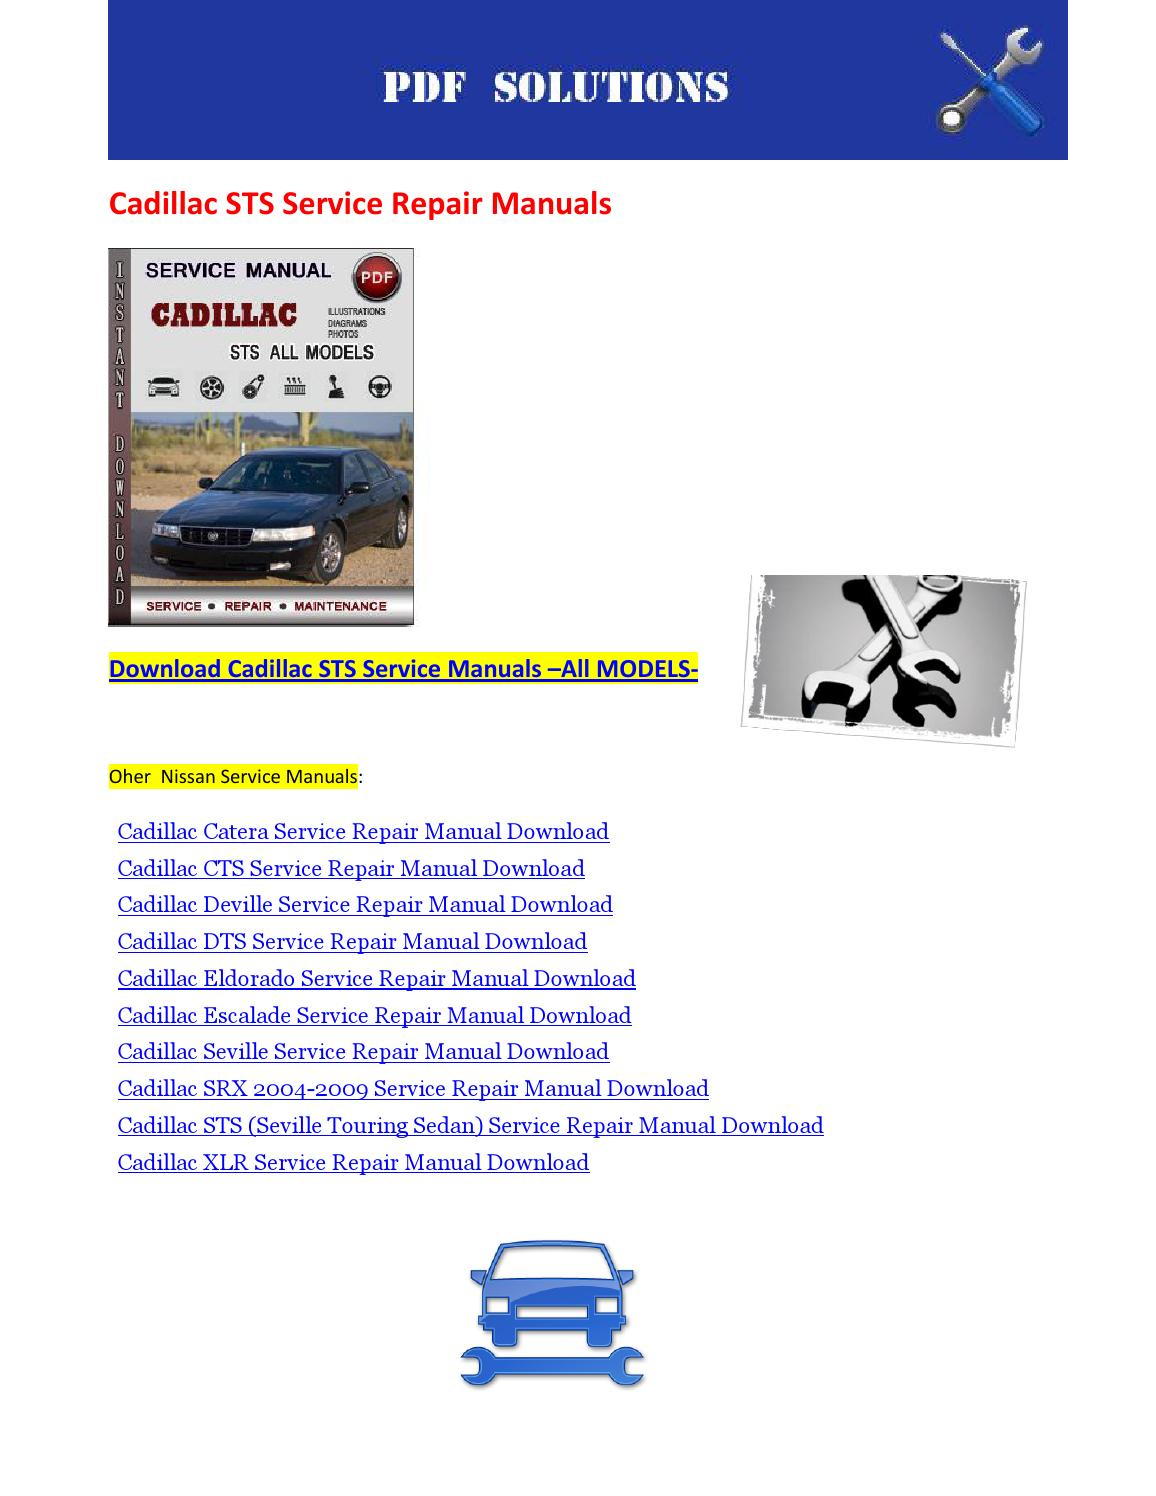 Cadillac Xlr Repair Manual Renault Workshop Service Wiring Diagram 2012 Pack Array Sts Download By Nissanexpert Issuu Rh